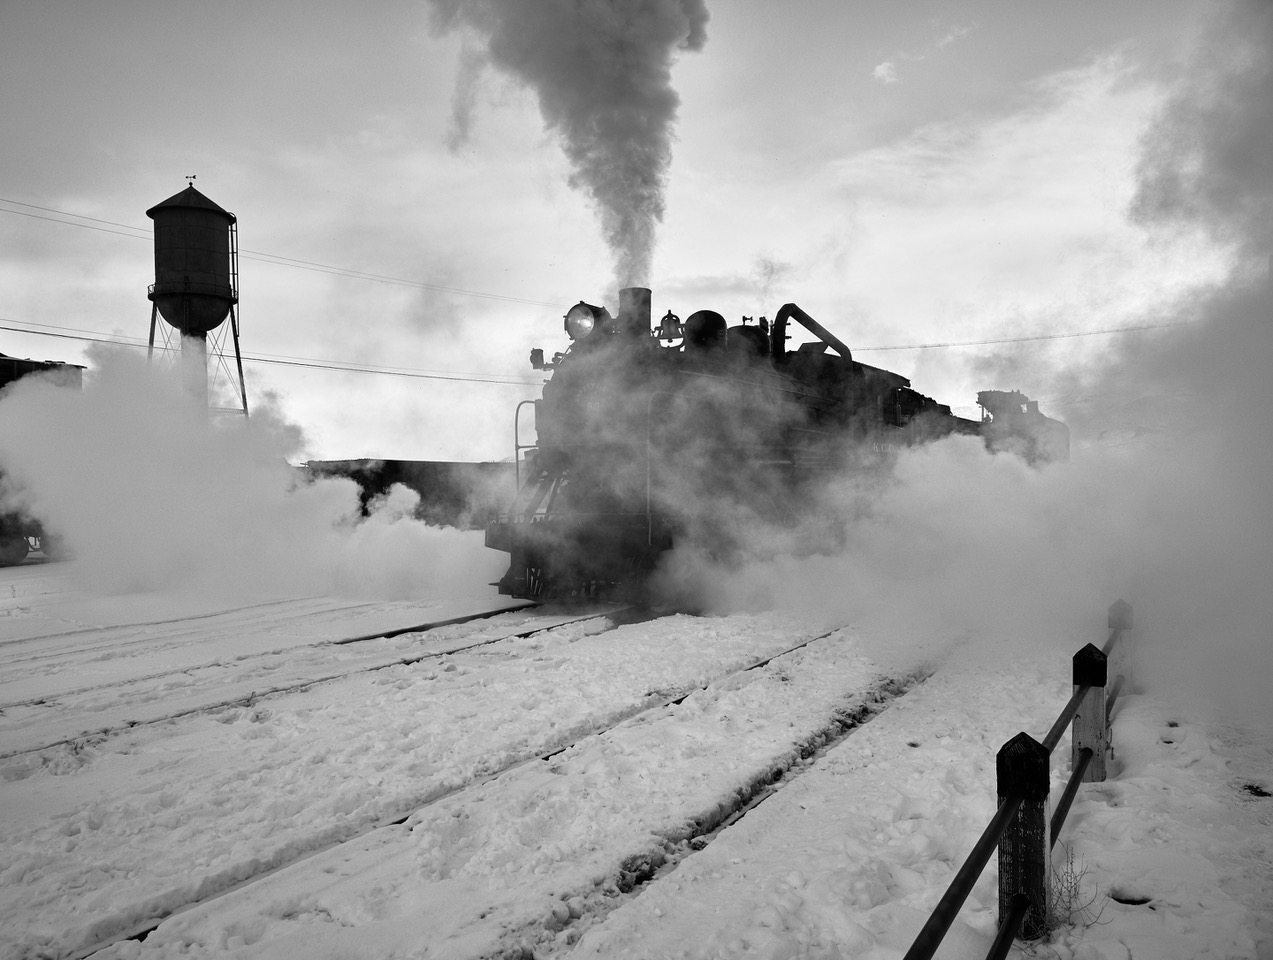 FUJI 50R STEAM ENGINES IN THE COLD OF WINTER